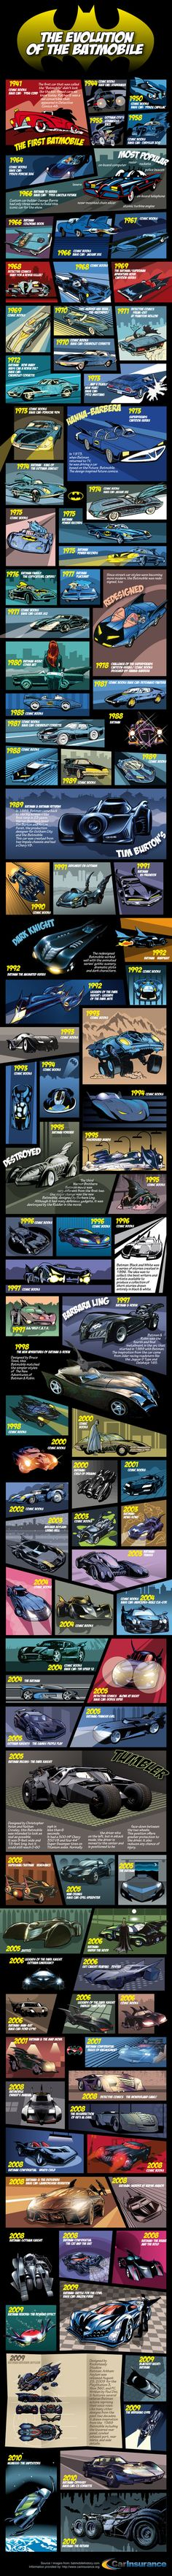 History of the Batmobile --- #Batman